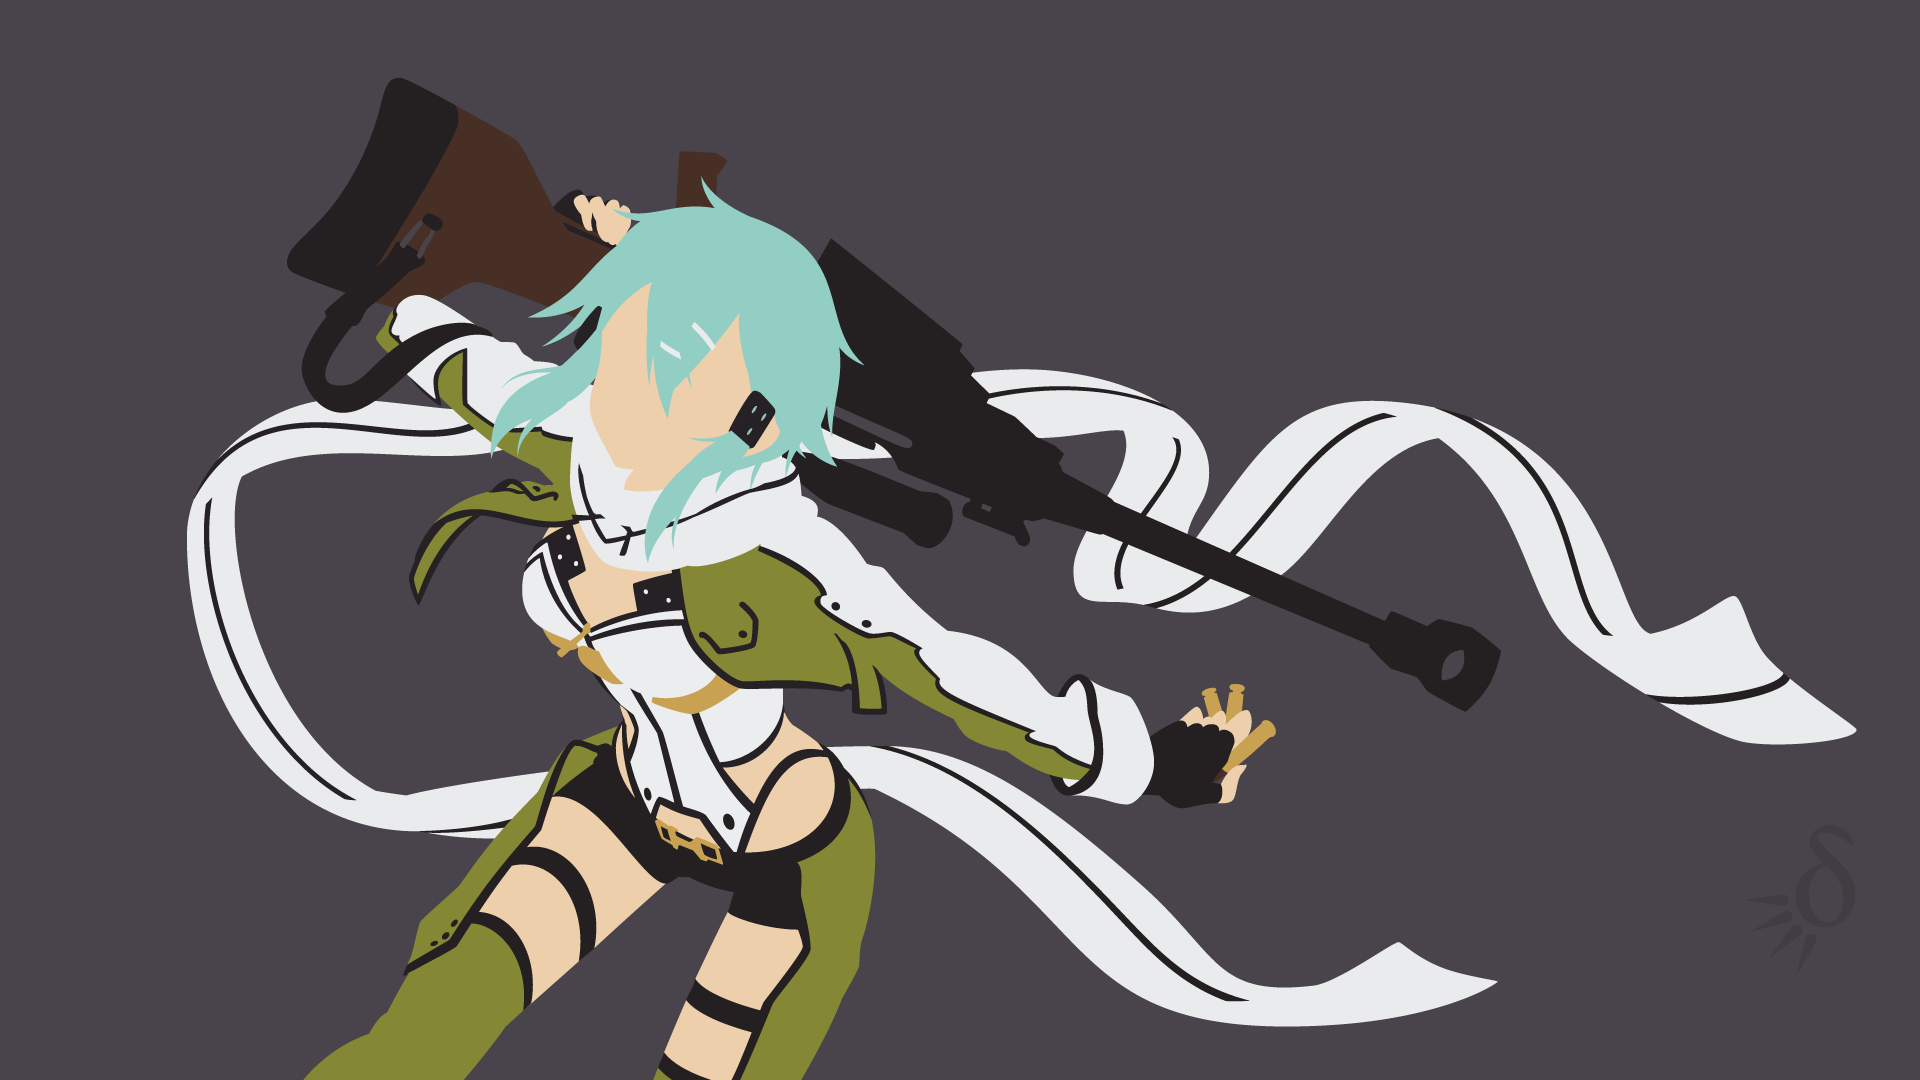 request sao ggo sinon by krukmeister fan art wallpaper movies tv 1920x1080